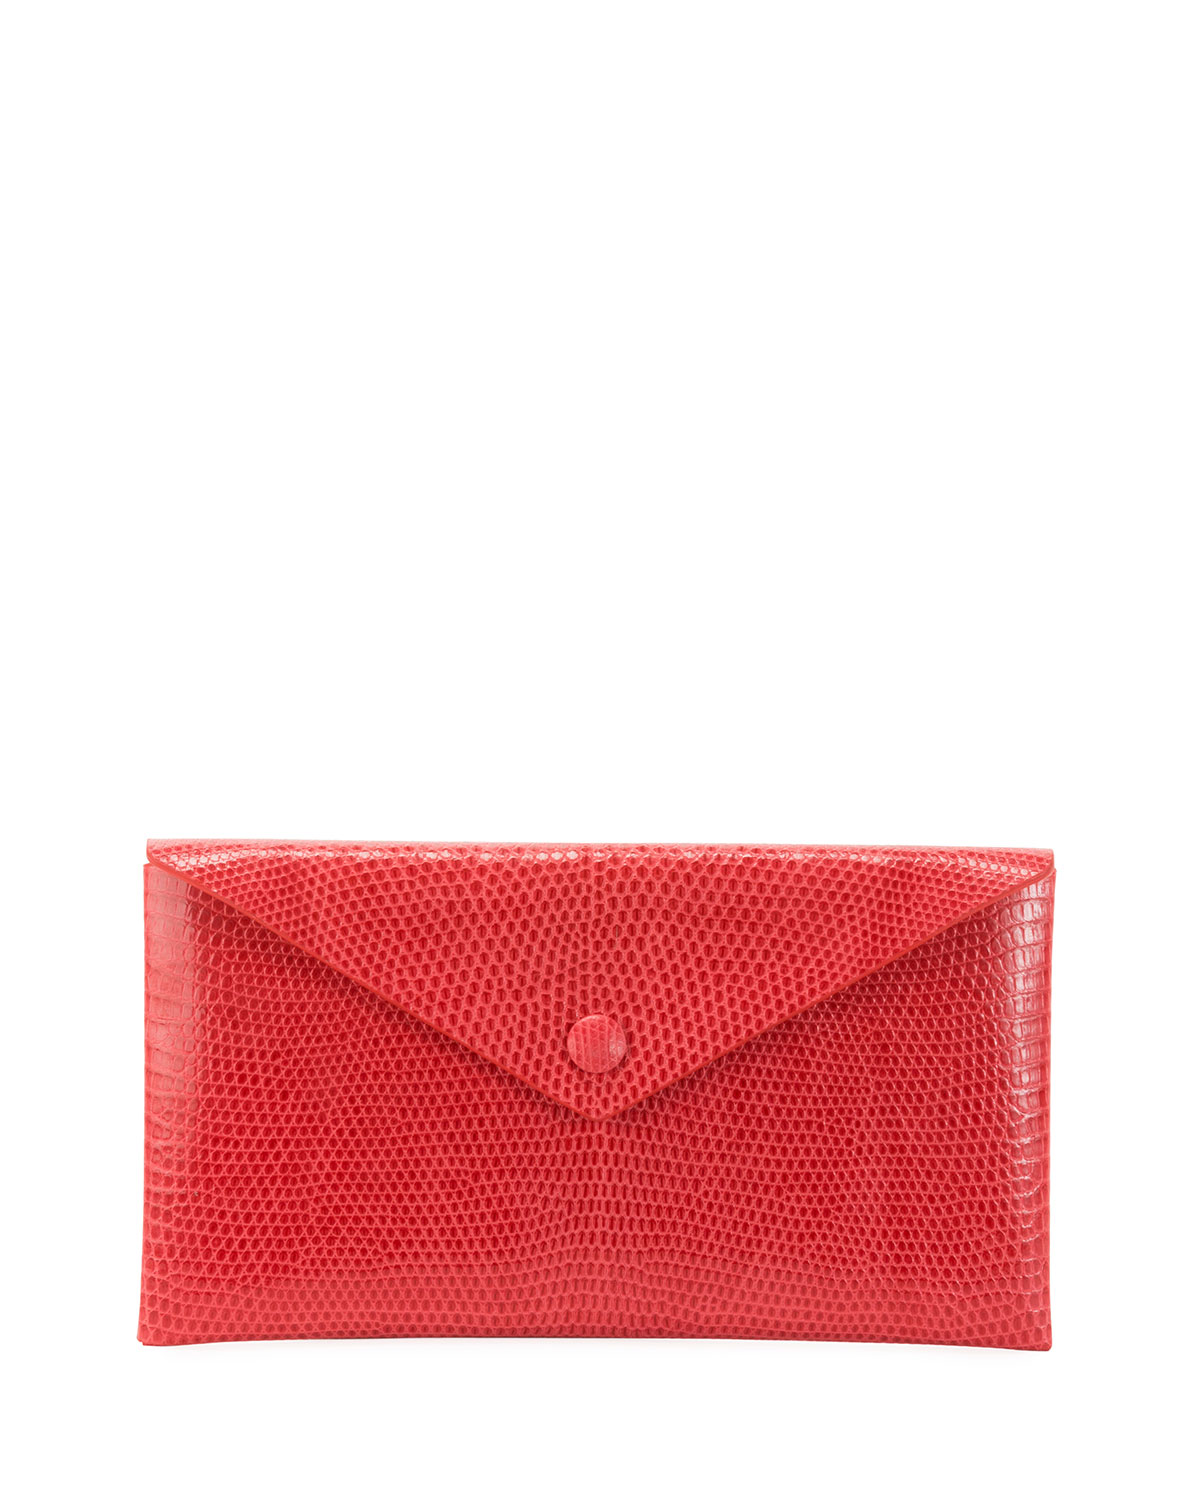 Alaïa Clutch LOUISE LIZARD ENVELOPE CLUTCH BAG